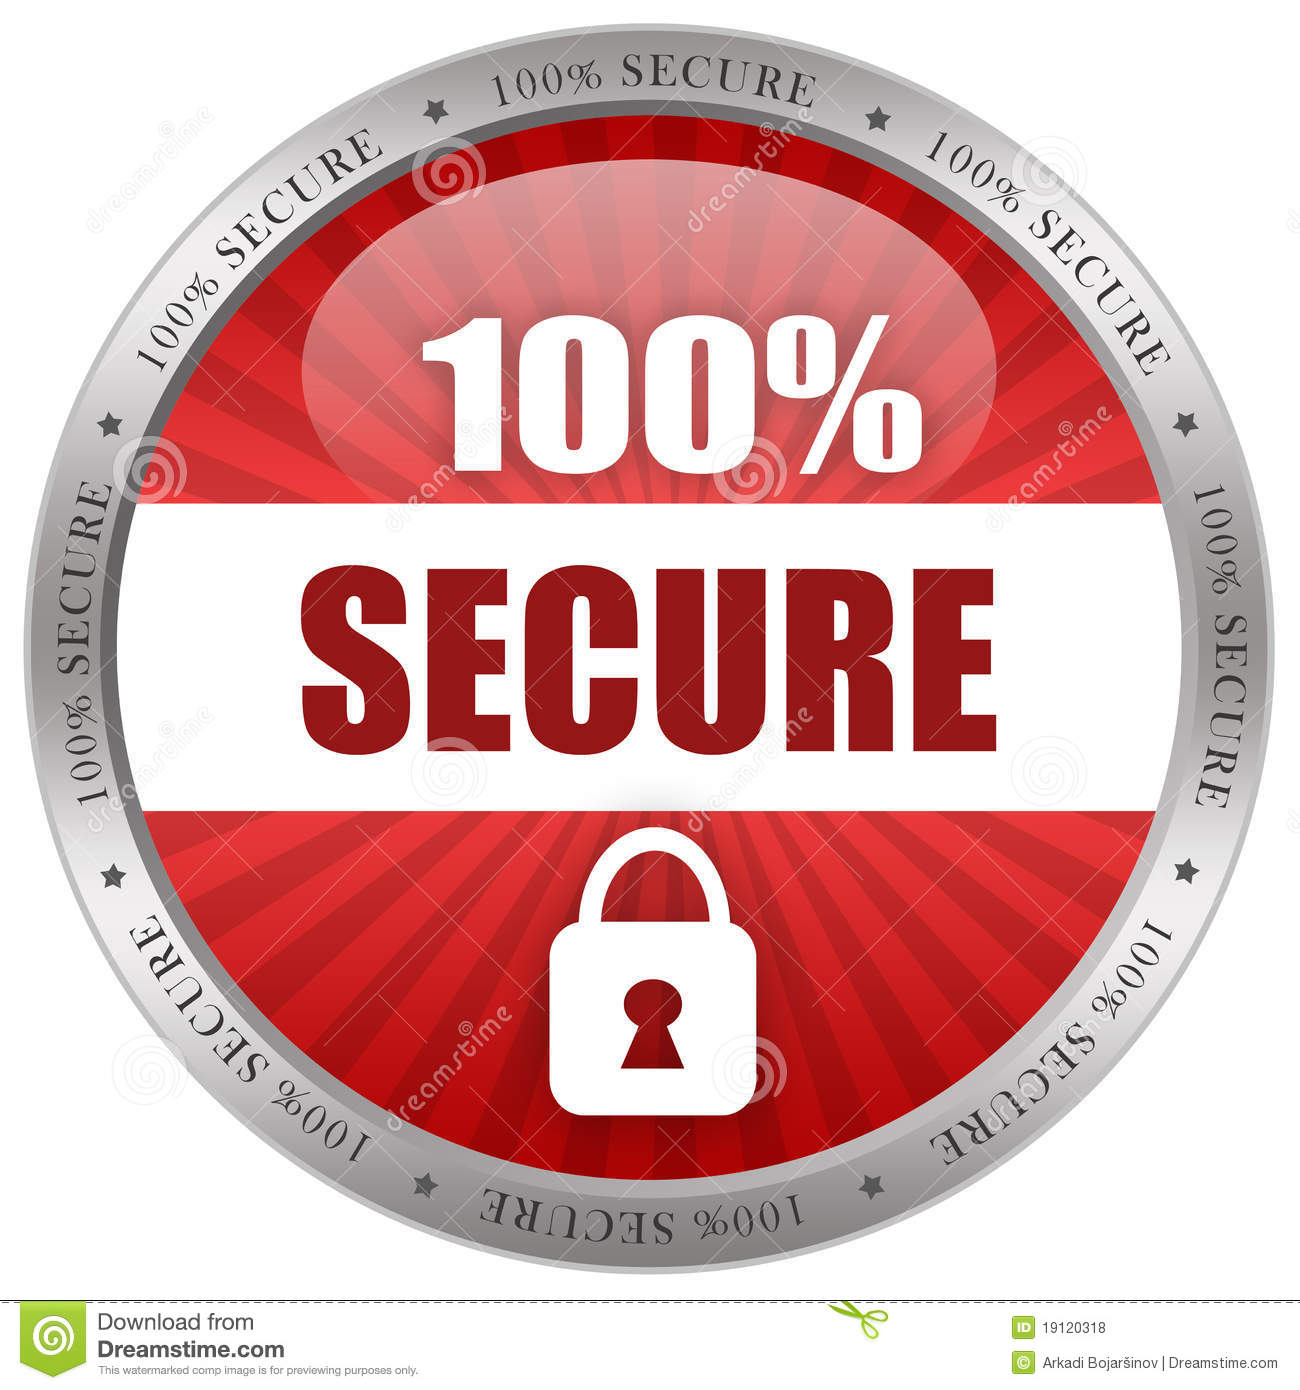 Shield design set royalty free stock photos image 5051988 - Secure Shiny Icon Royalty Free Stock Photos